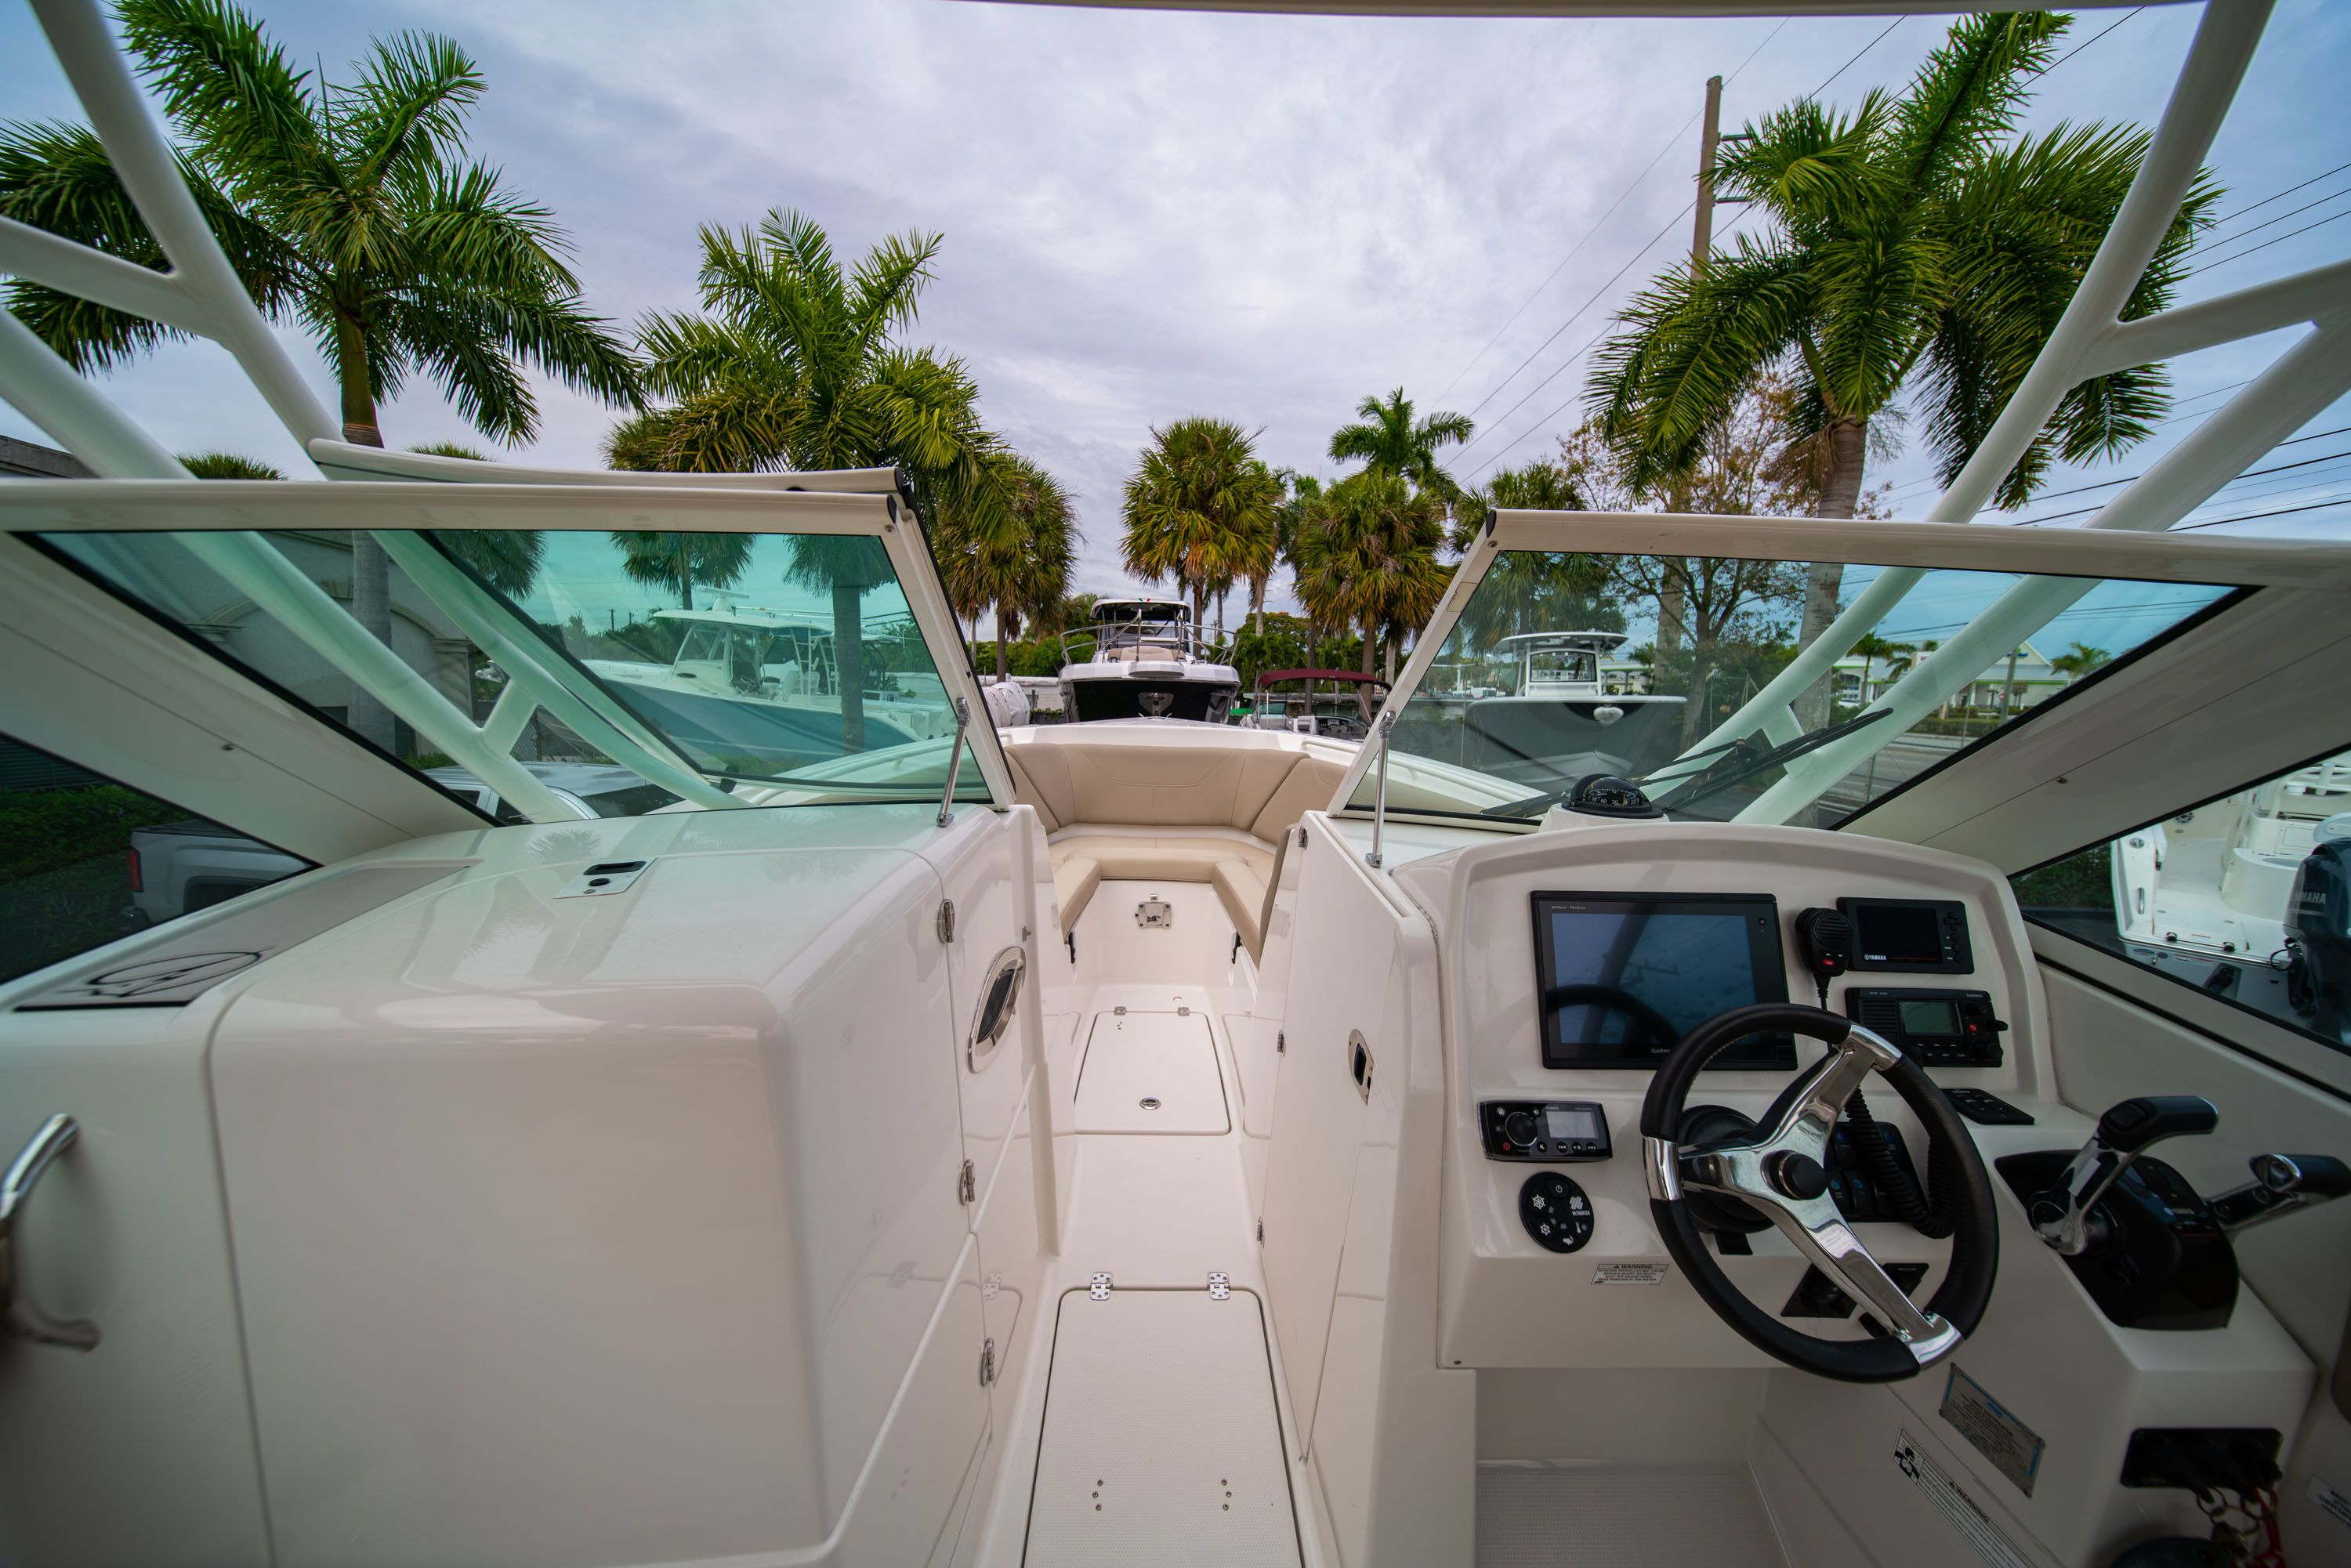 Thumbnail 45 for Used 2017 Sailfish 275 Dual Console boat for sale in West Palm Beach, FL